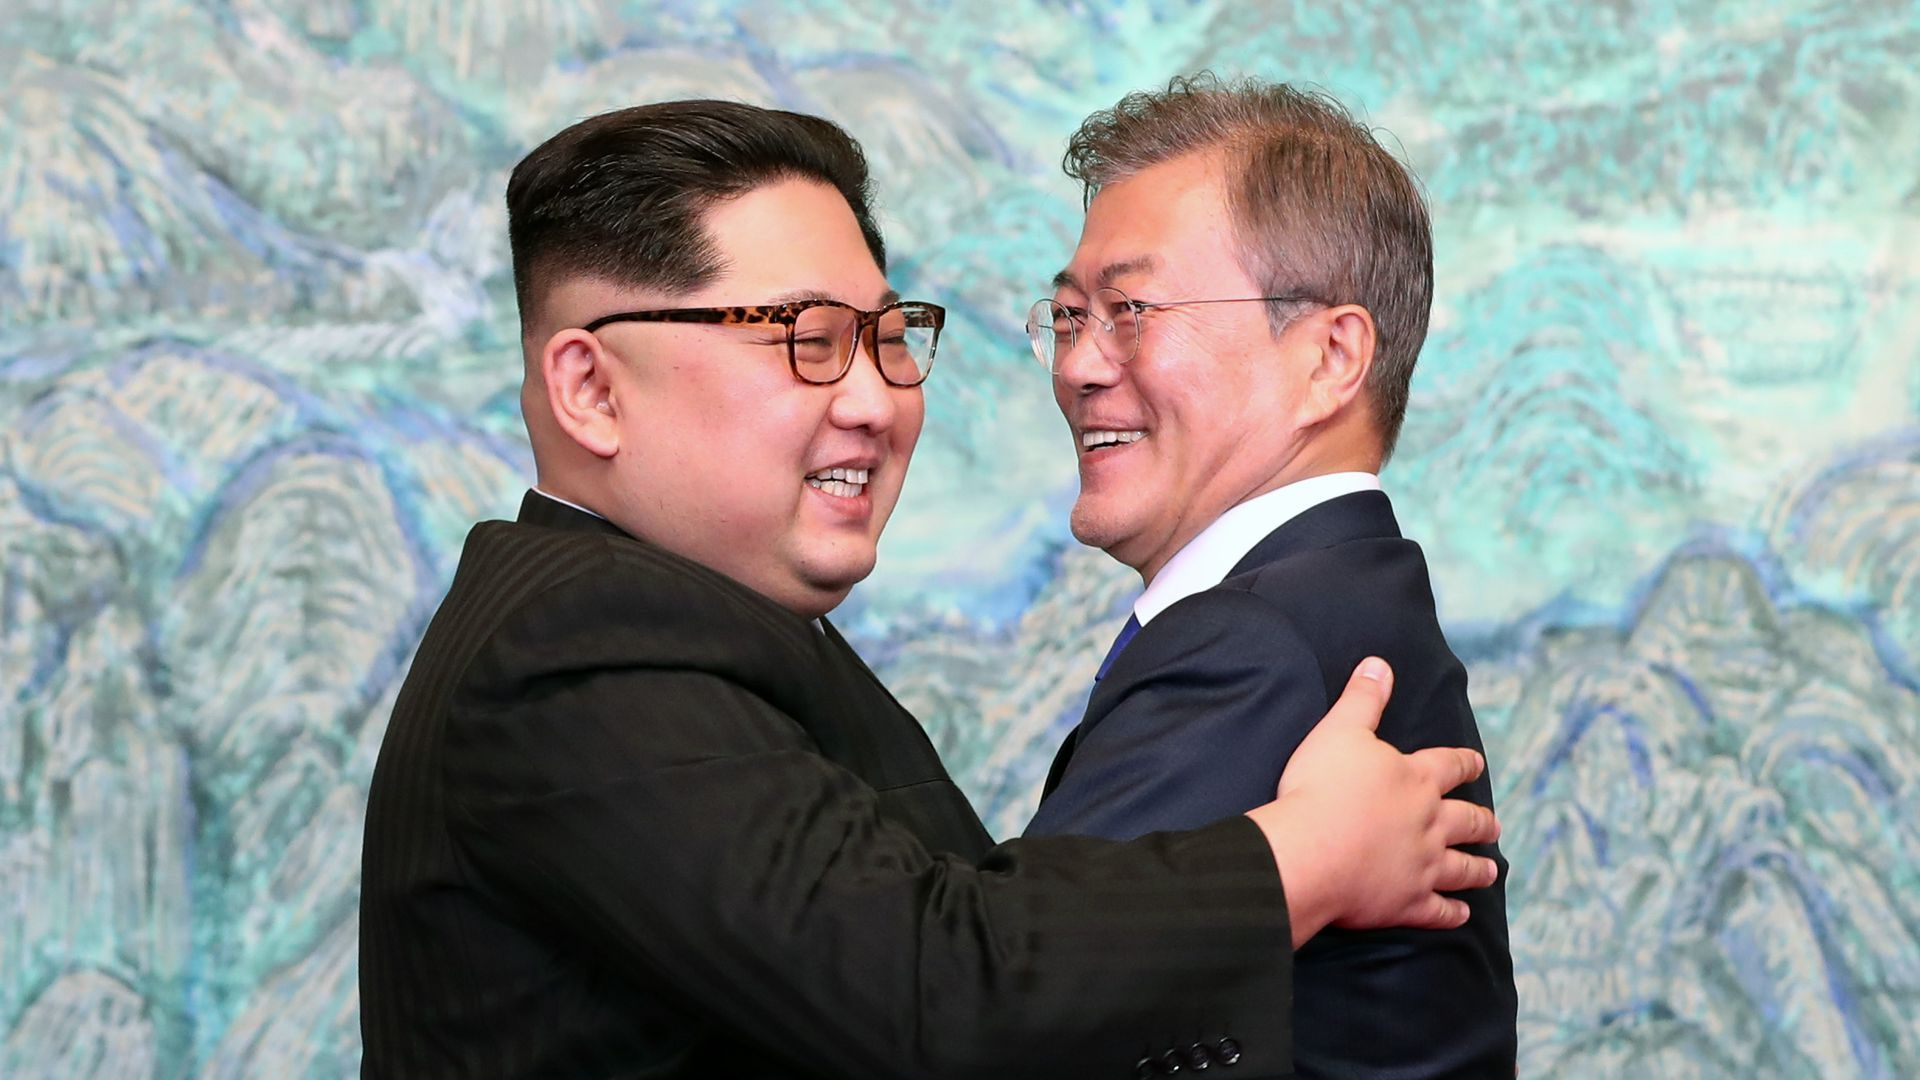 Kim Jong-un ad Moon Jae-in embrace before a blue-green background.